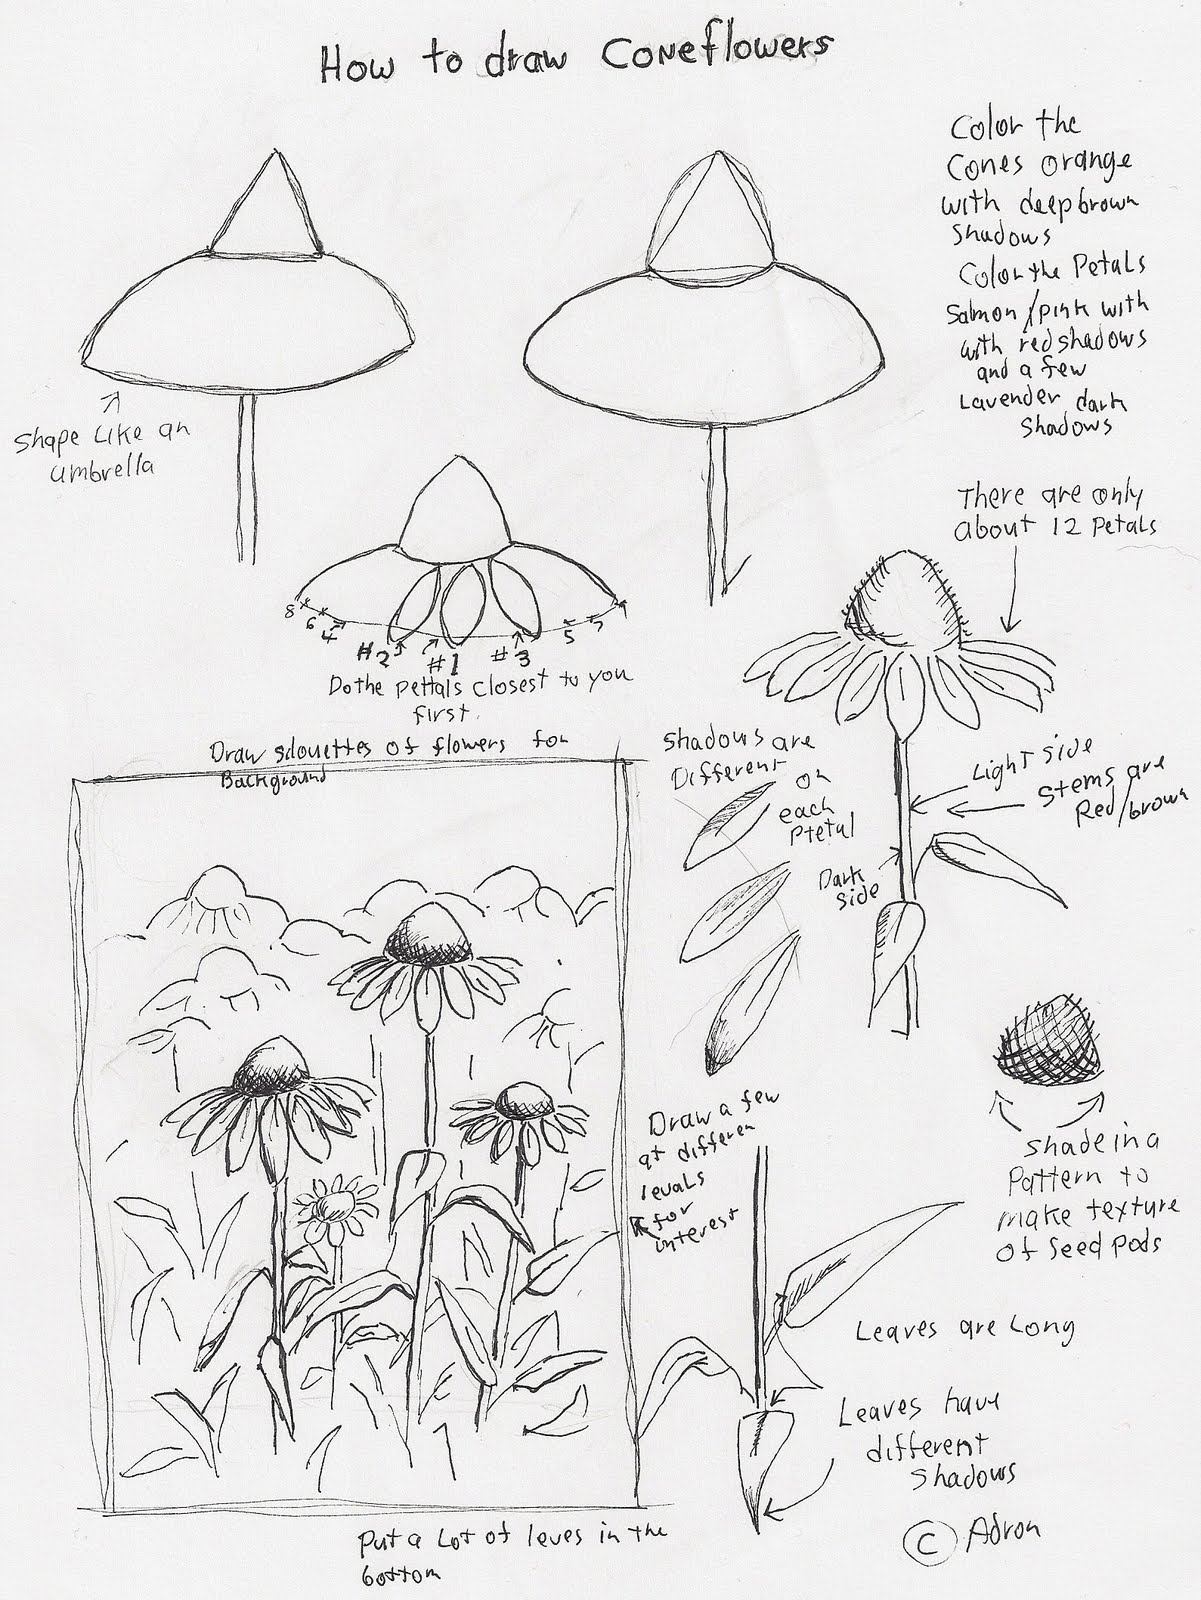 learn how to draw cone flowers